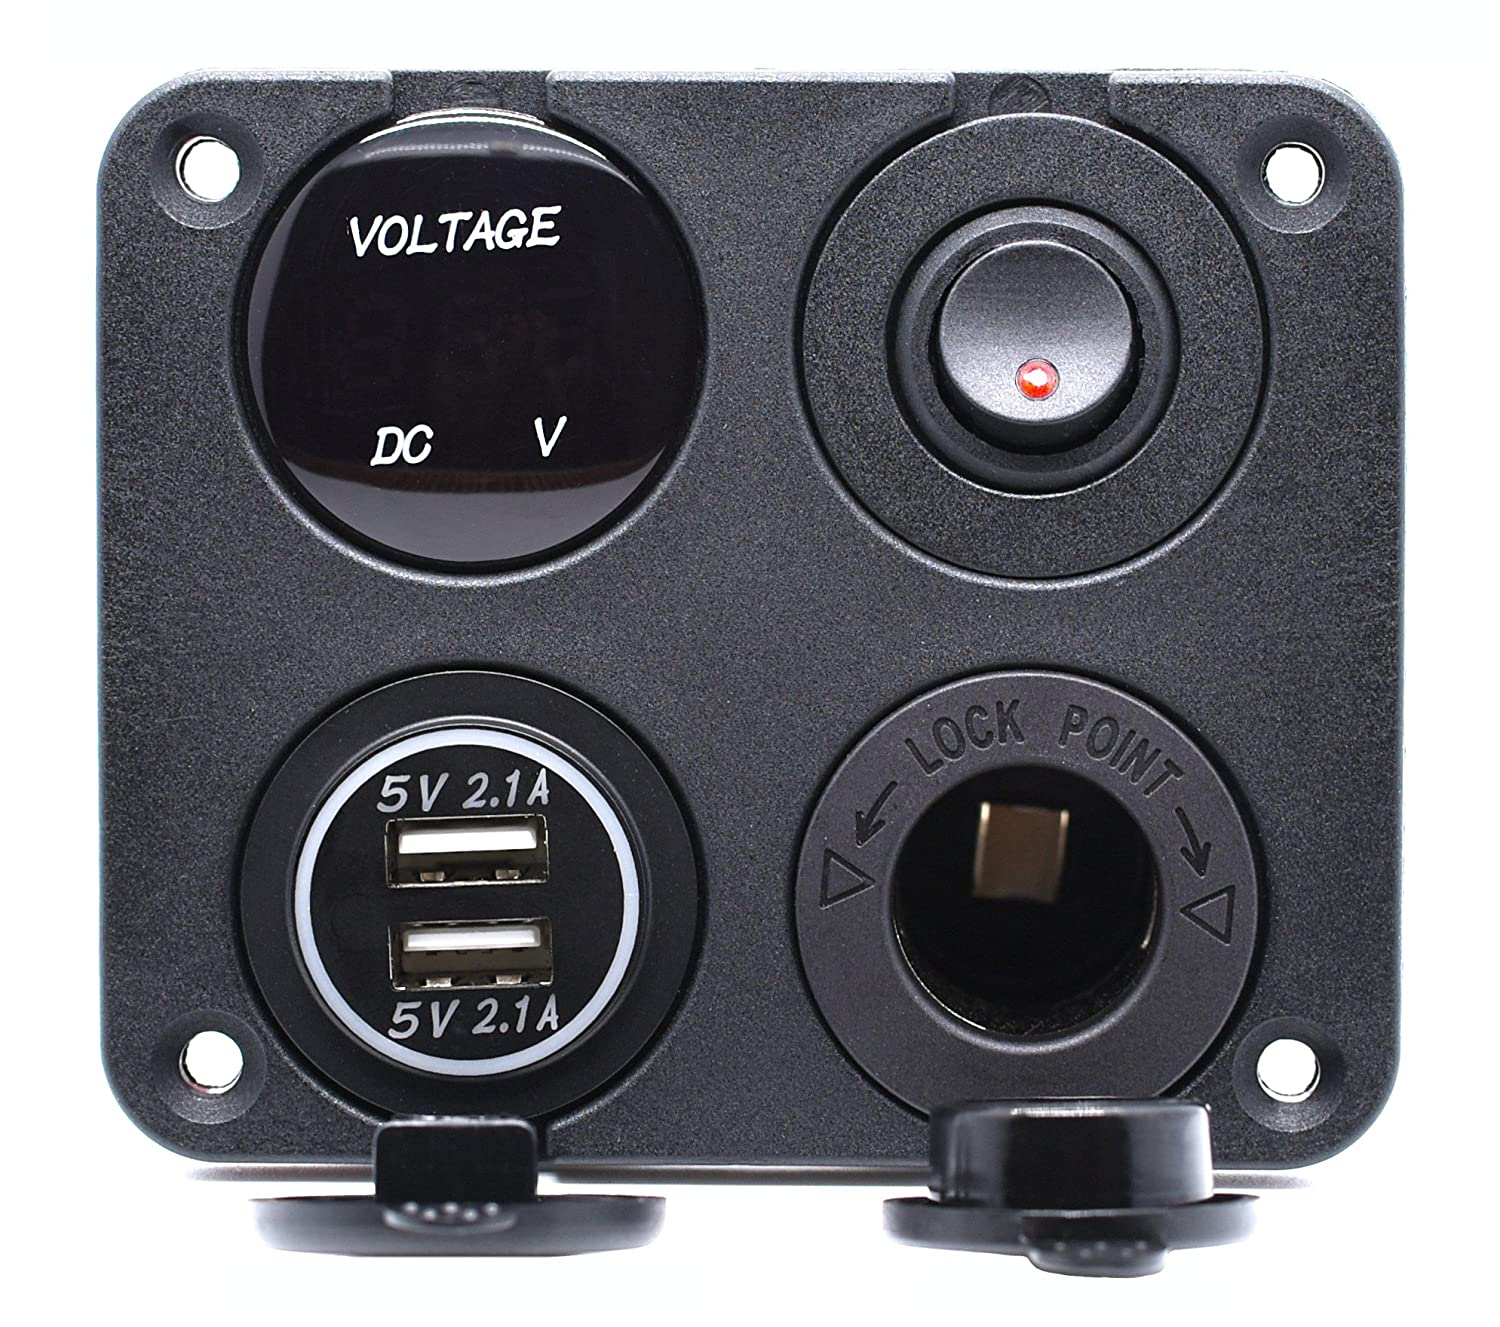 91SHxXKUZjL._SL1500_ cllena dual usb socket charger 2 1a&2 1a led voltmeter 12v  at aneh.co